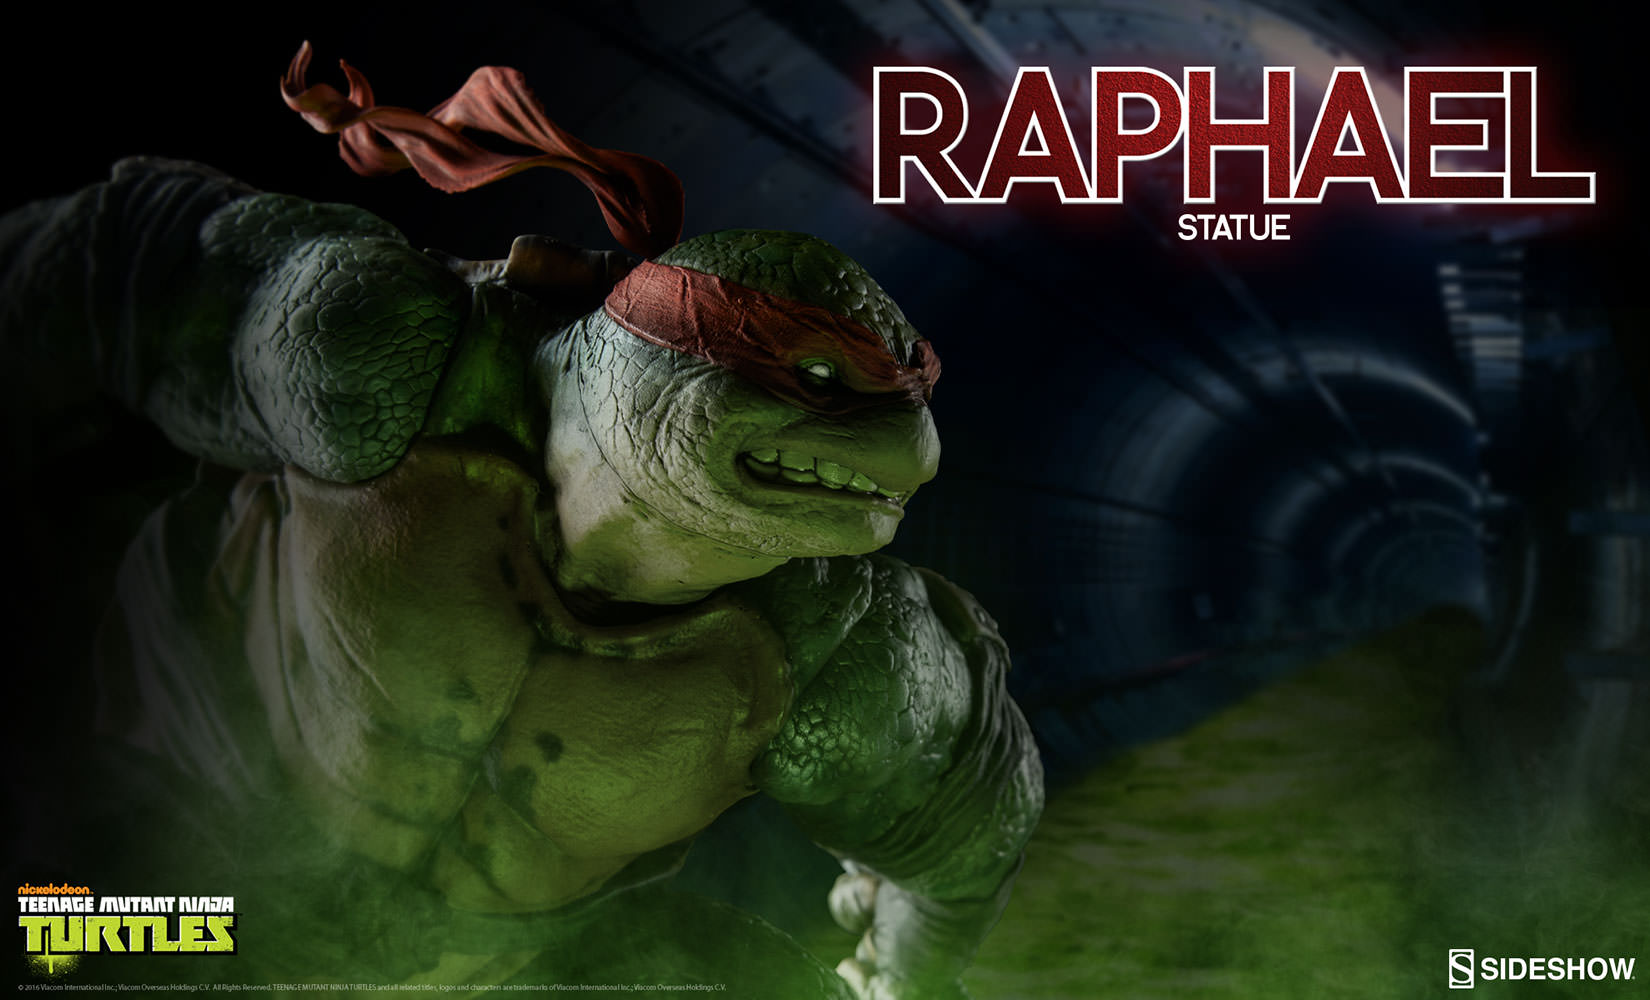 Sideshow Teenage Mutant Ninja Turtles (TMNT) Raphael Statue